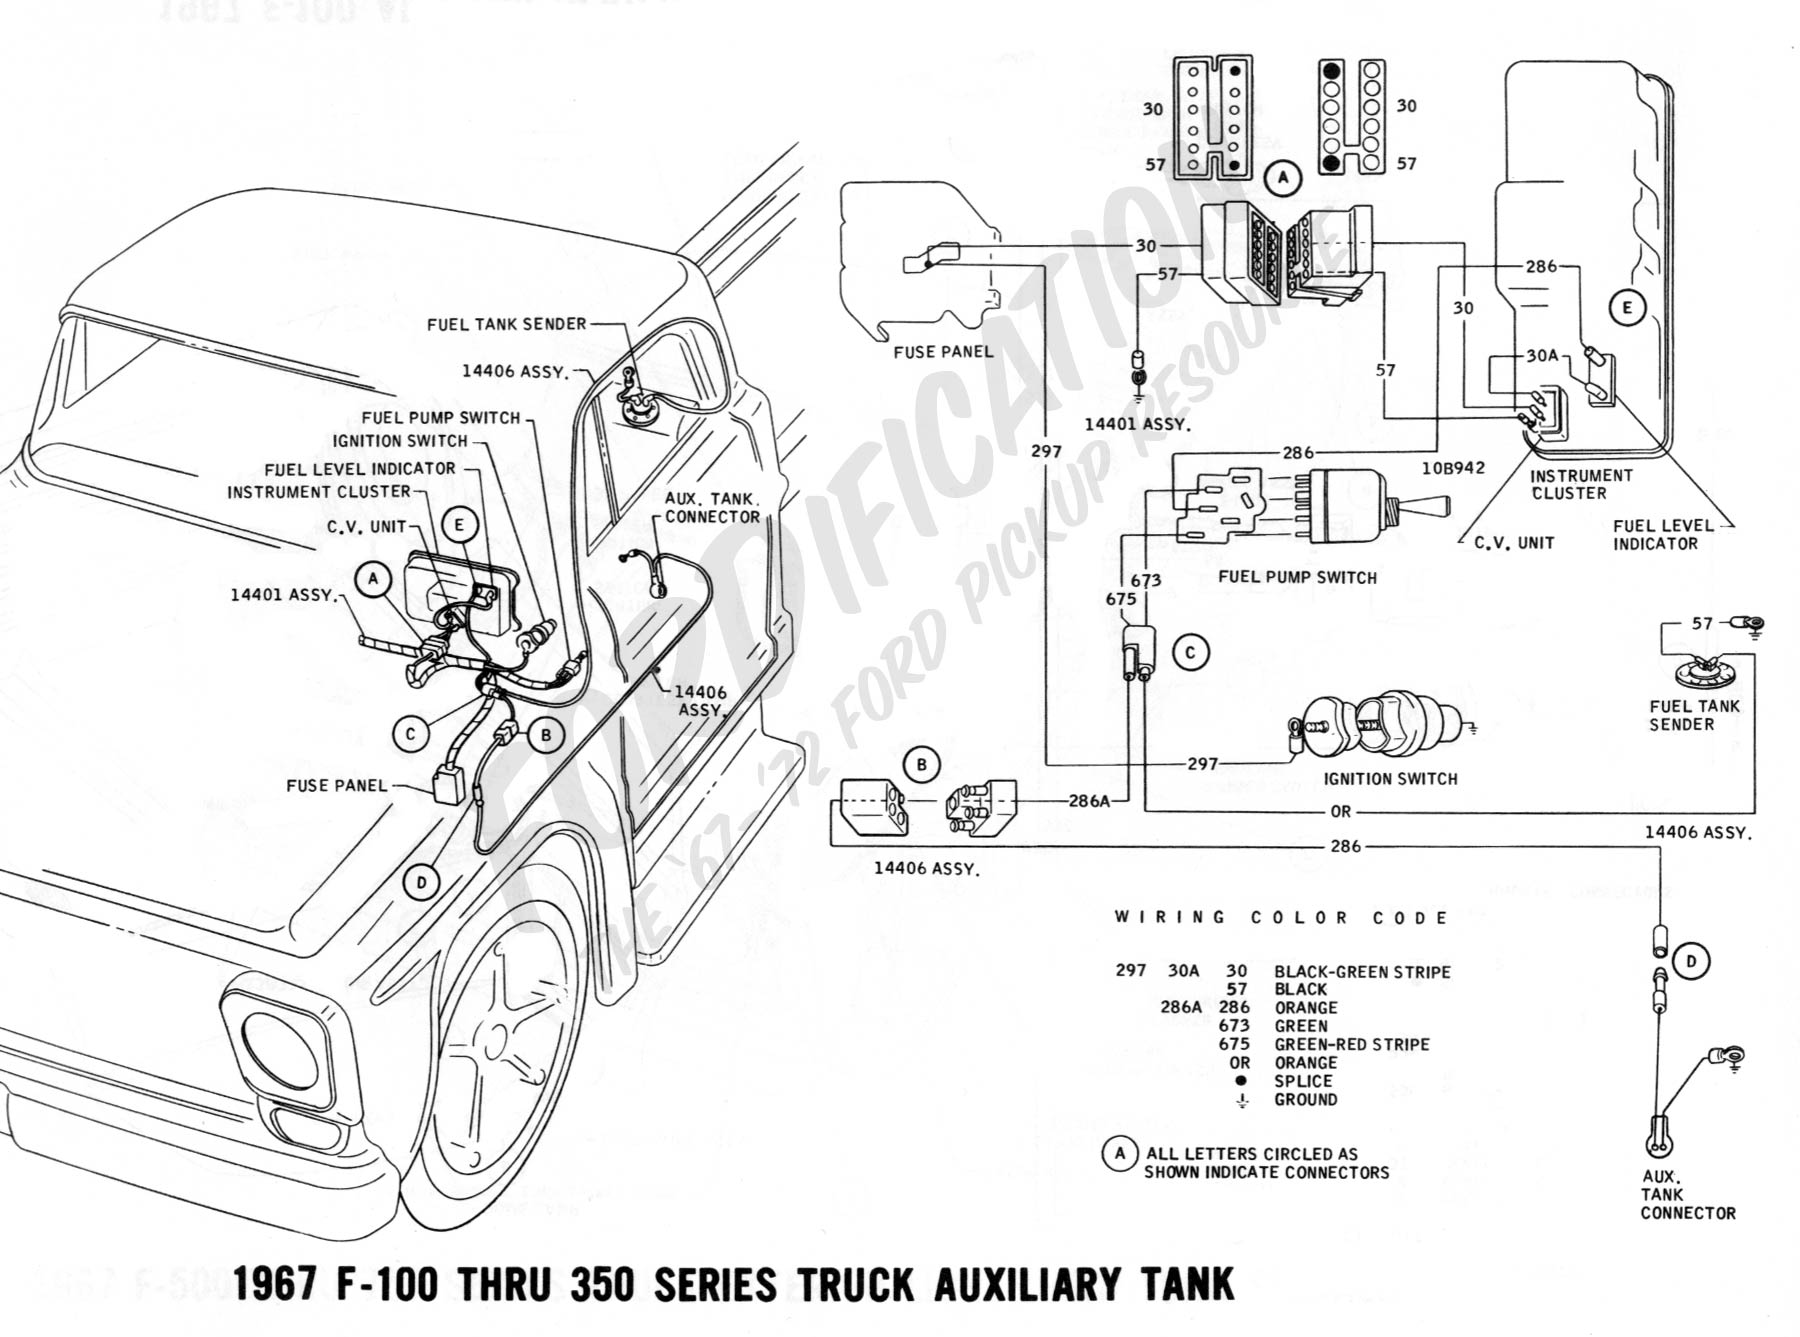 1966 Ford Pinto Wiring Diagram, 1966, Free Engine Image